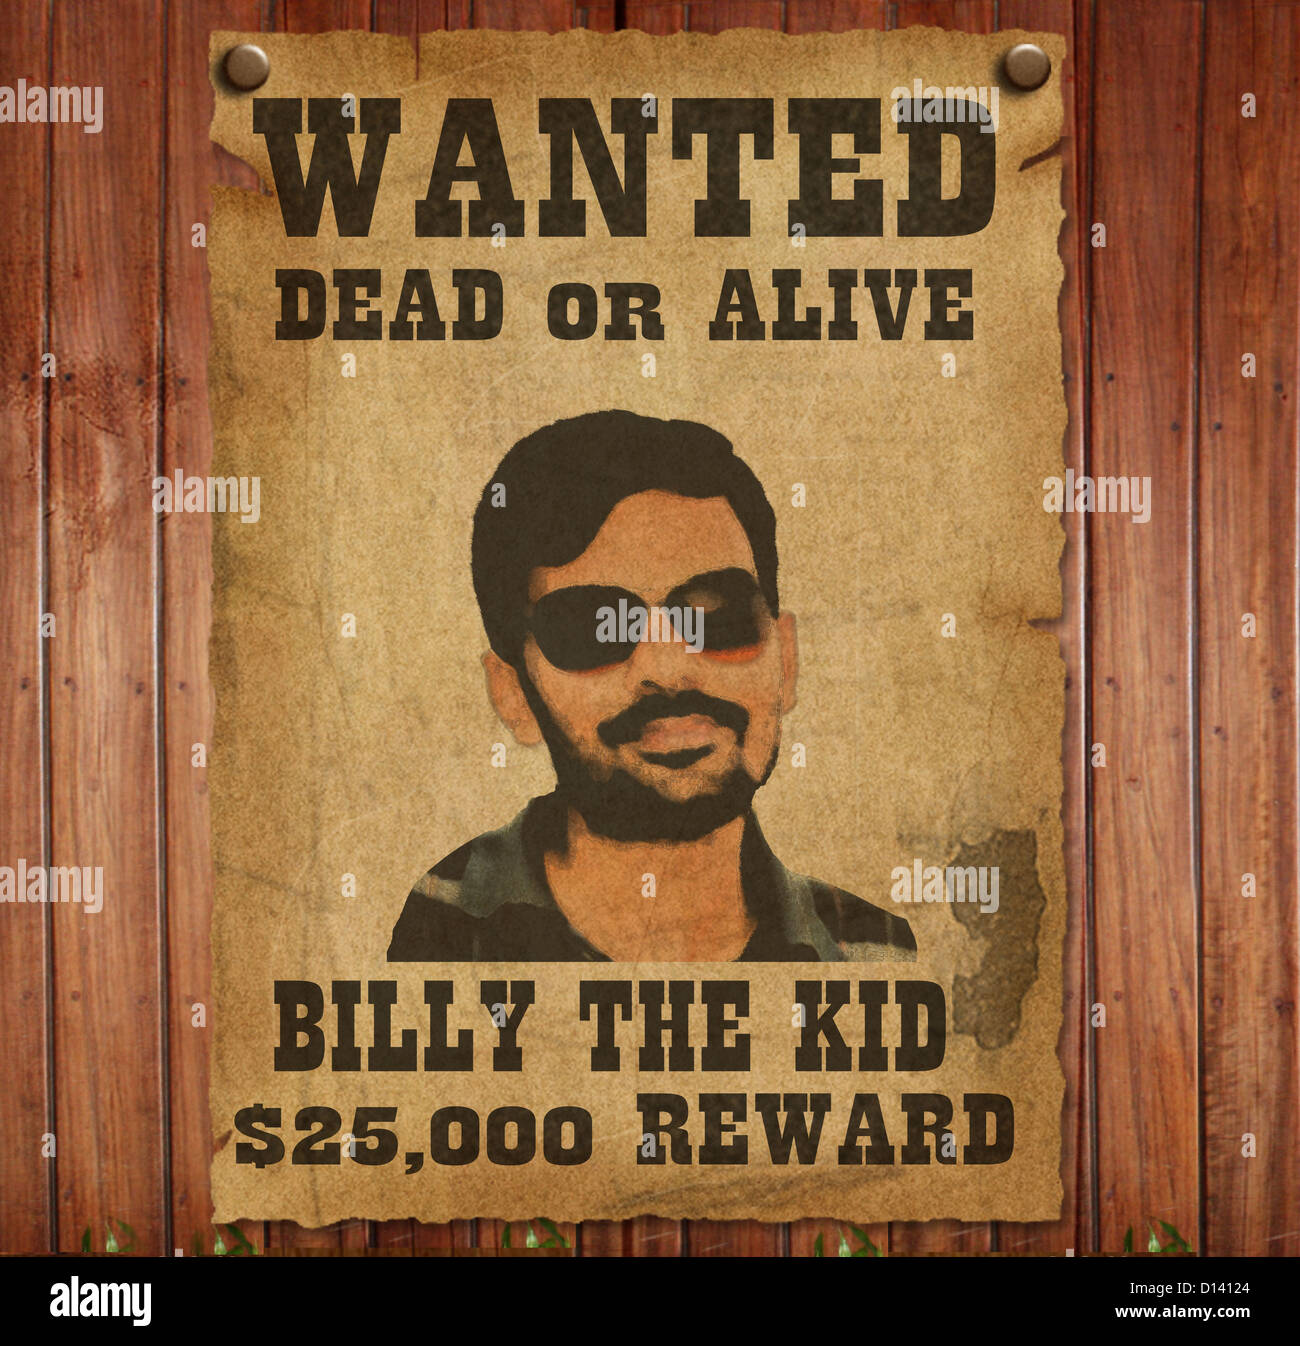 Wanted Poster Template with Bounty Reward Photo Royalty – Template for a Wanted Poster